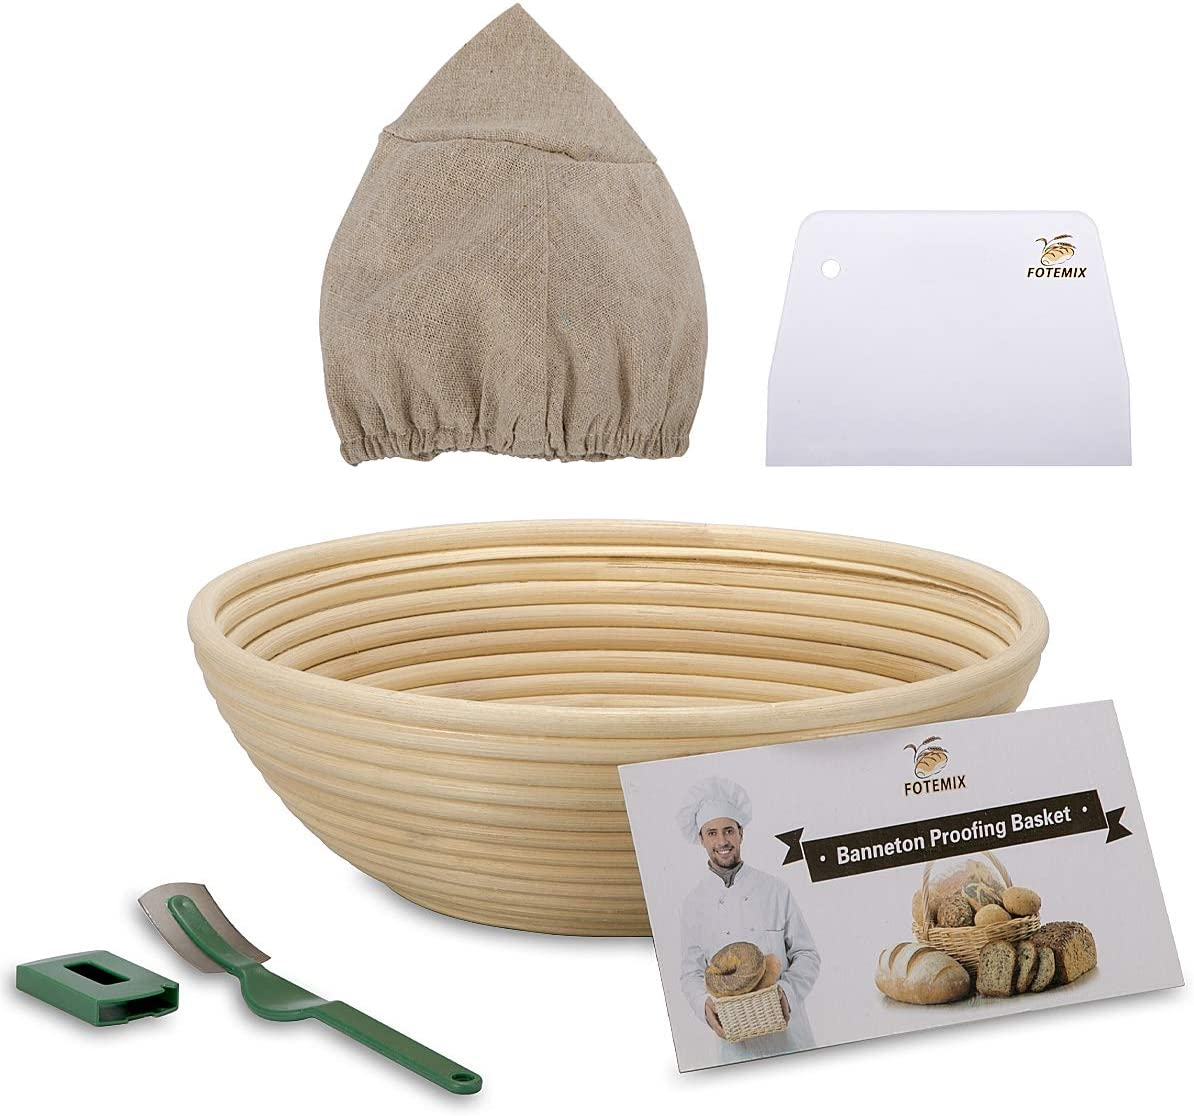 Sucastle 5-12 Inch Round Banneton Proofing Basket Includes Linen Liner Dough Scraper Bread Lame Size : 5INCH Rising Dough Baking Bowl Gifts For Professional /& Home Bakers